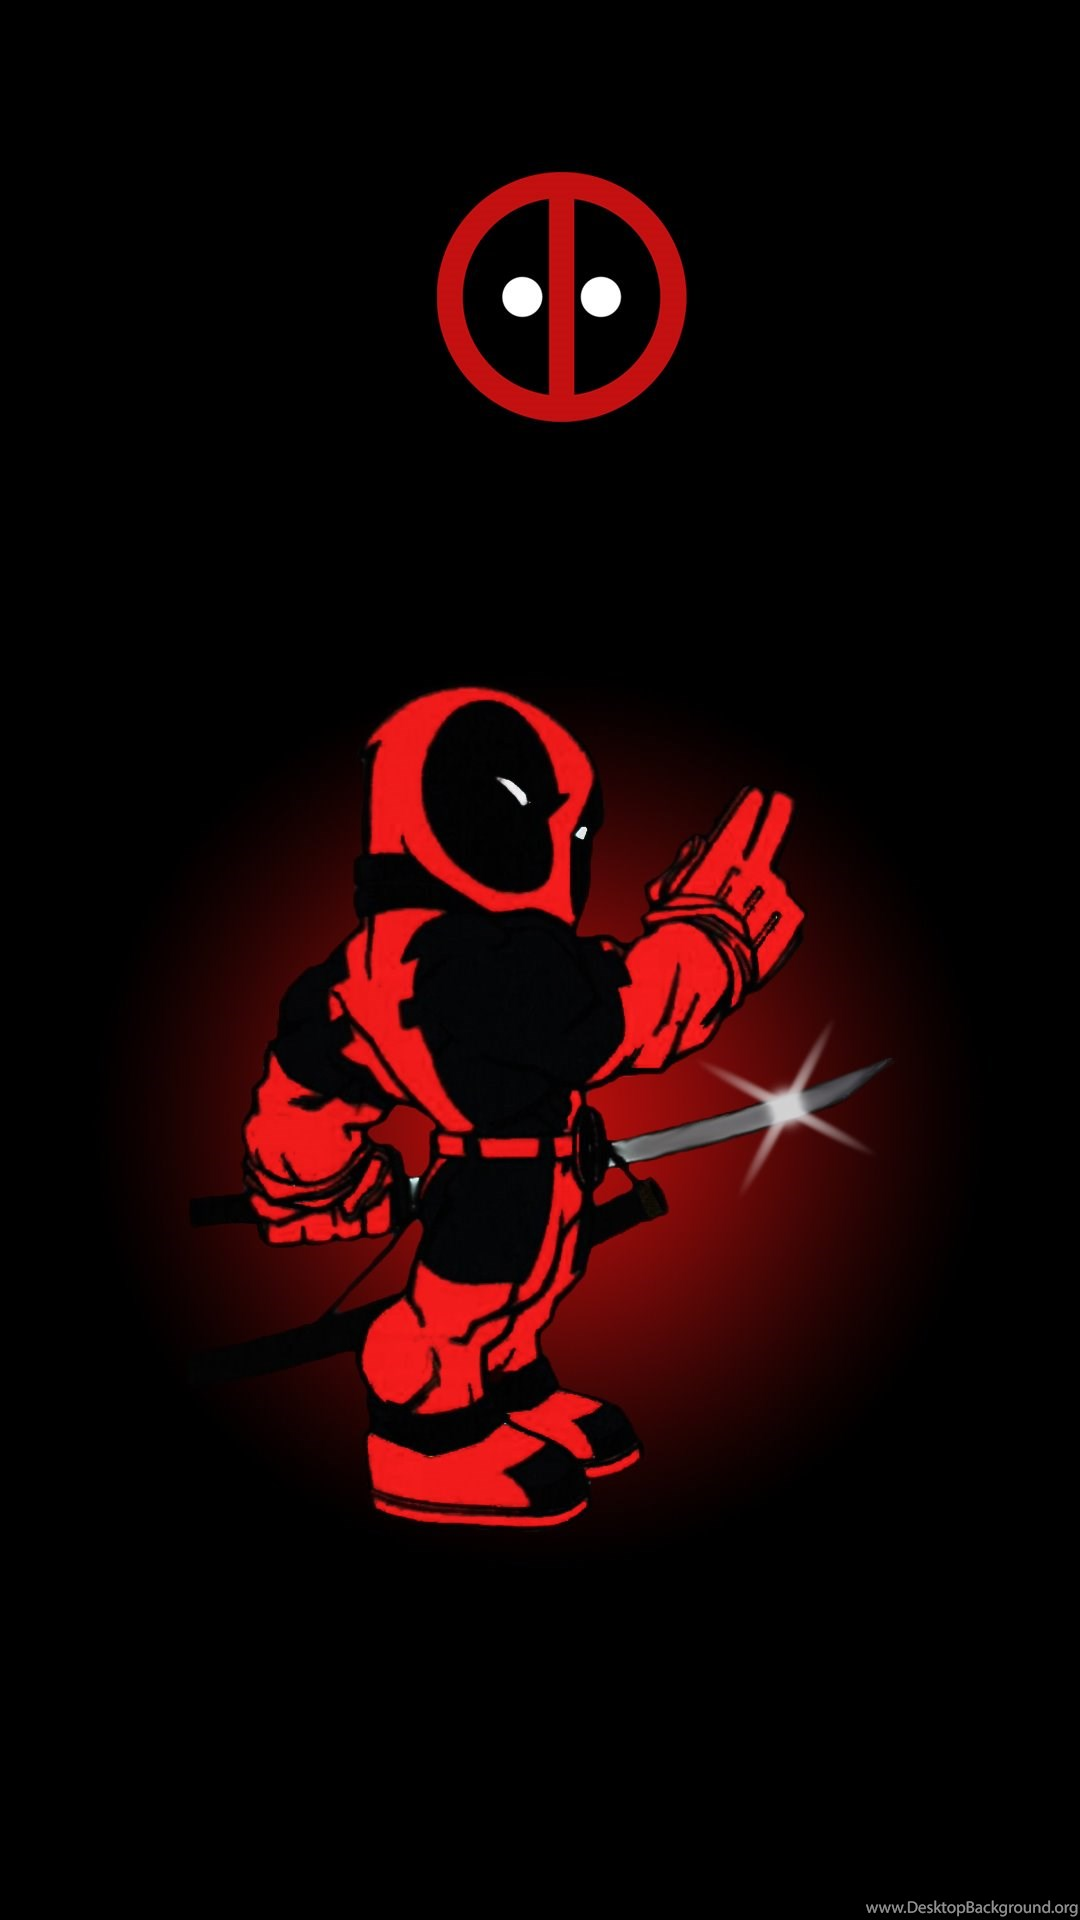 Funny Deadpool Android Wallpapers Size Android